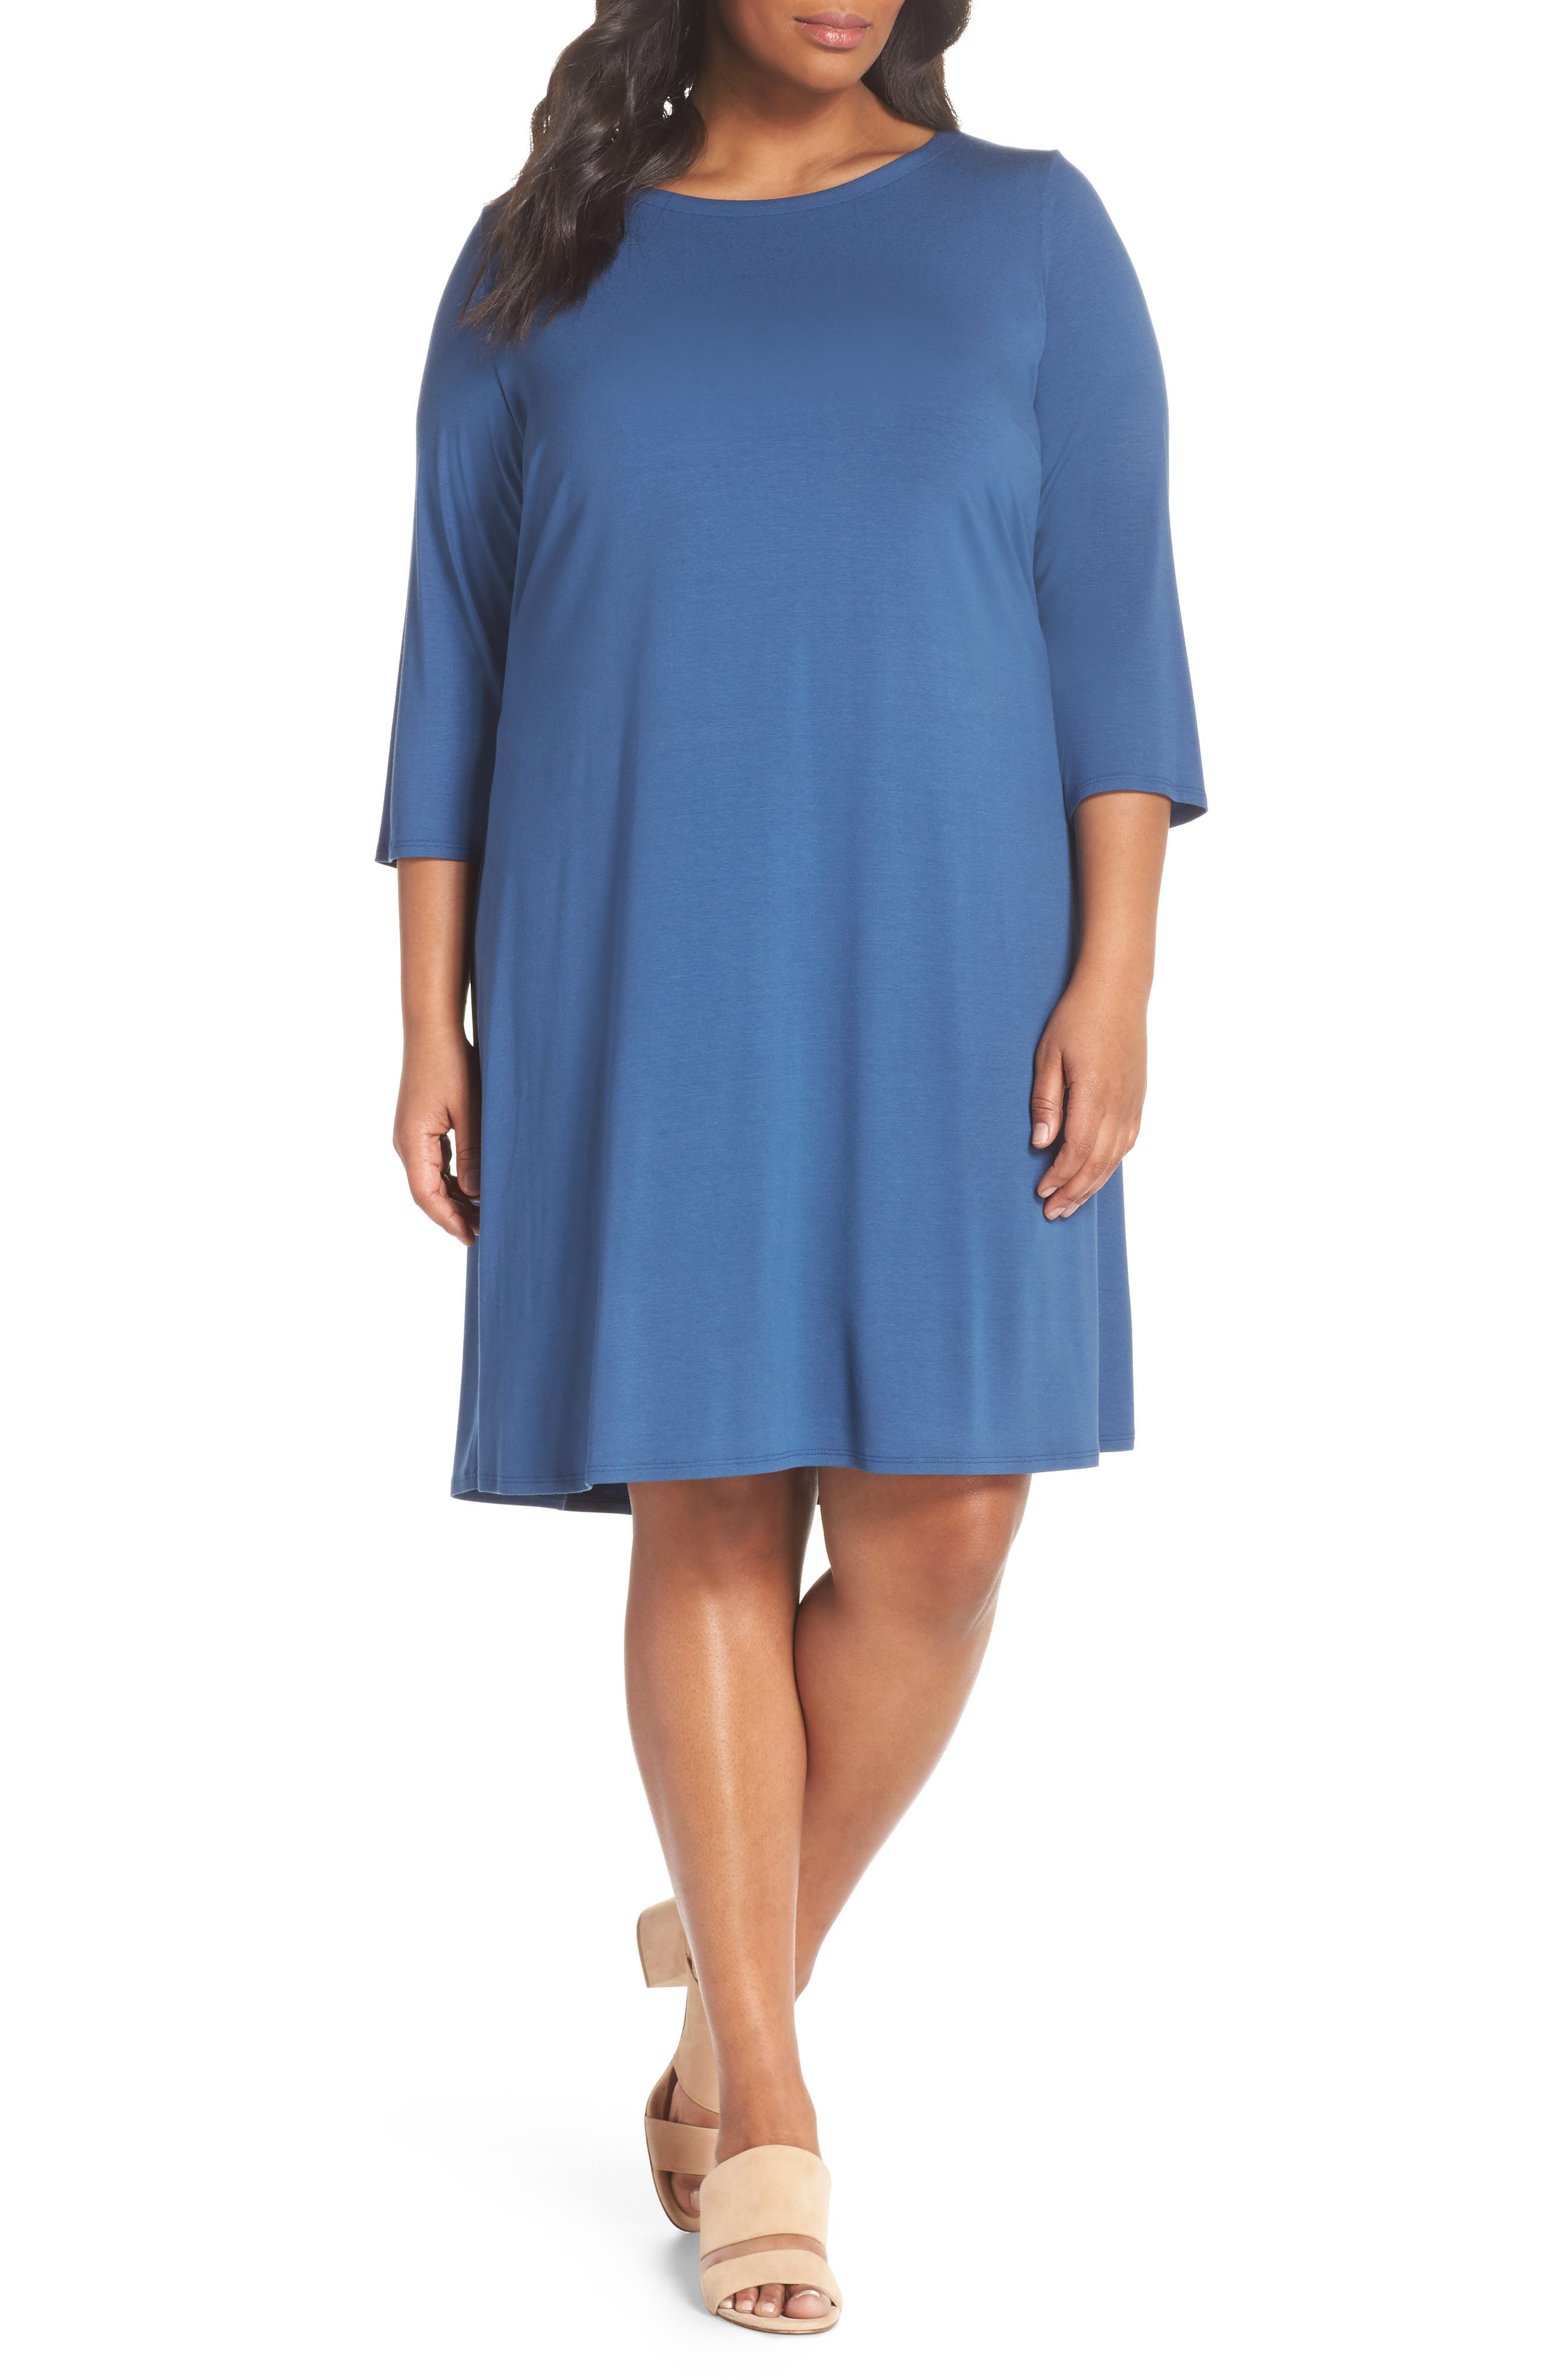 Eileen Fisher Jewel Neck Tie Back Dress (Plus Size)